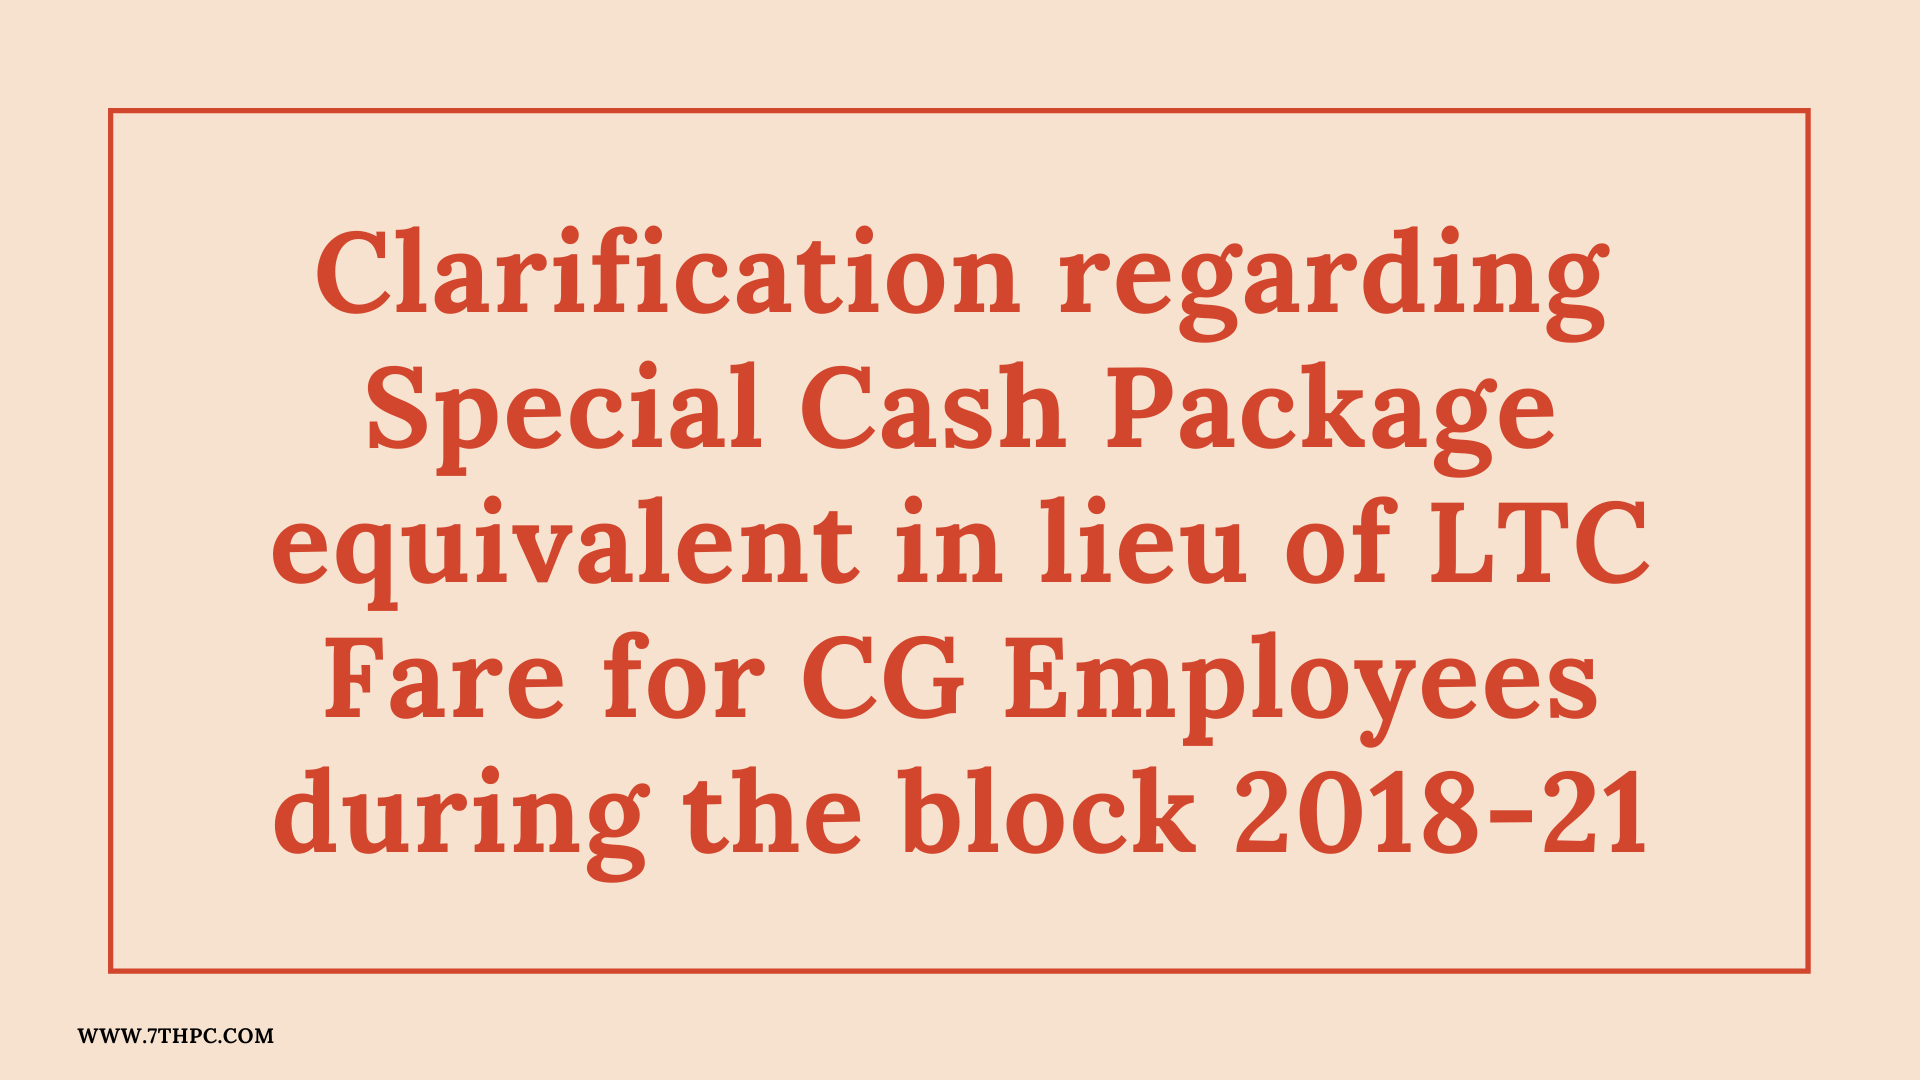 Clarification regarding Special Cash Package equivalent in lieu of LTC Fare for CG Employees during the block 2018-21